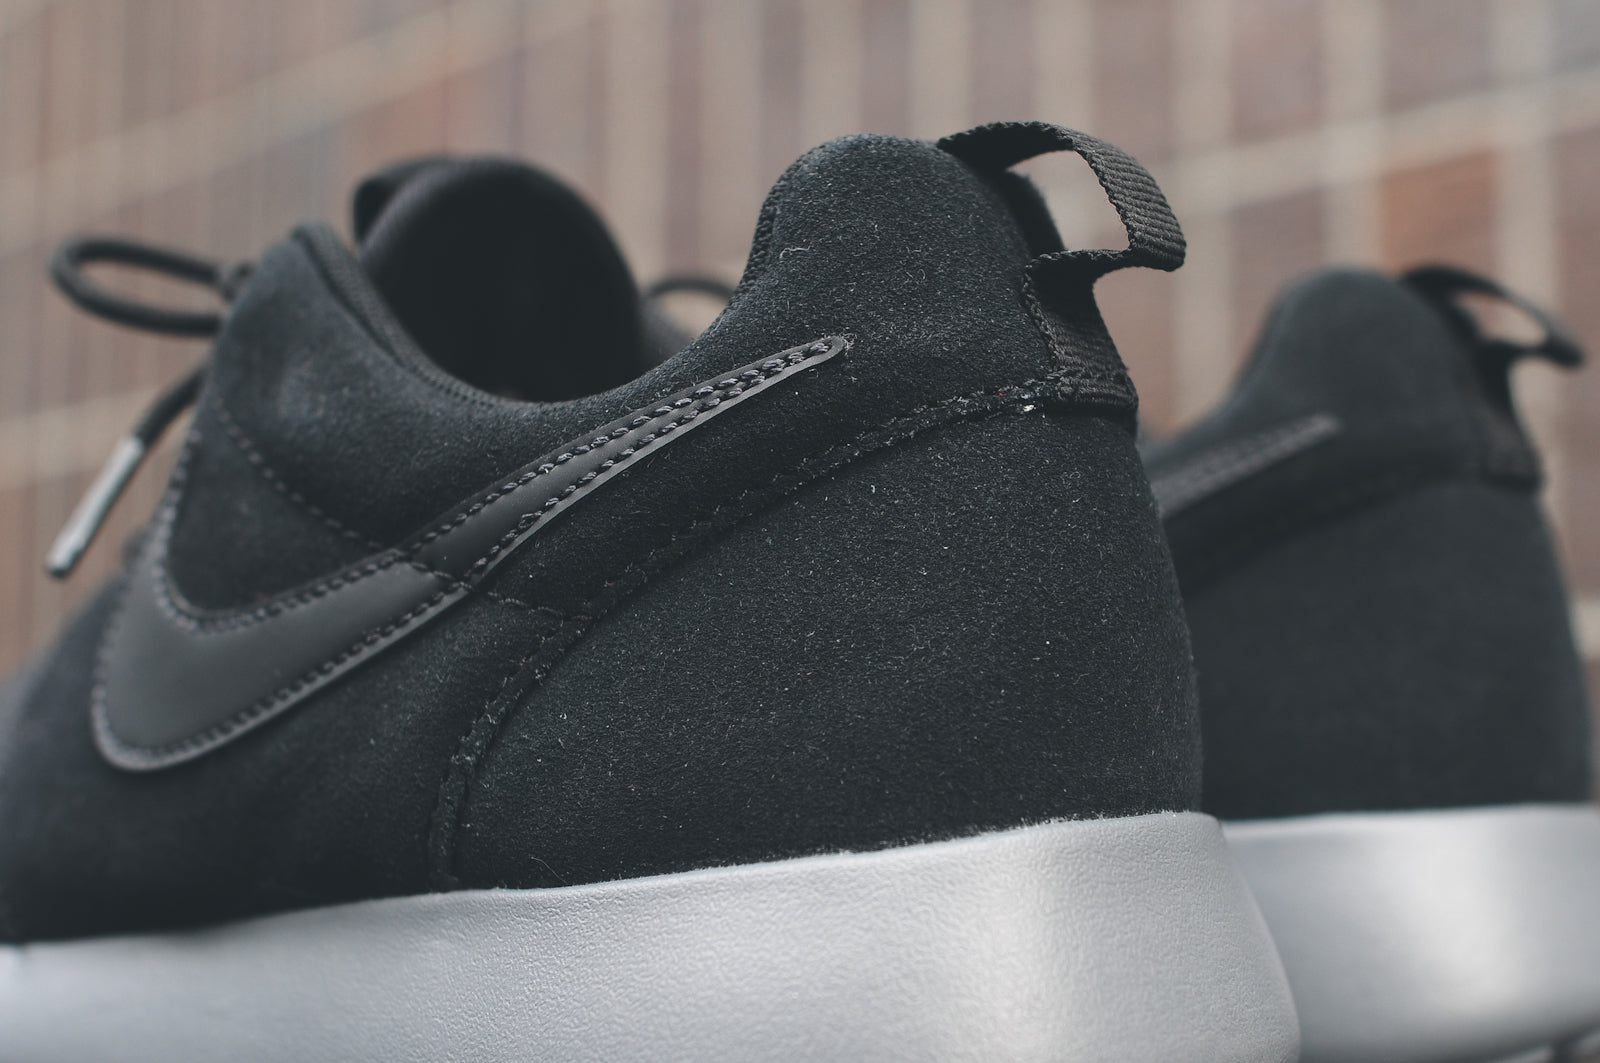 f6d2f52c21ad The NIKE Roshe Run Fall Winter 2014 Collection arrives at KITH